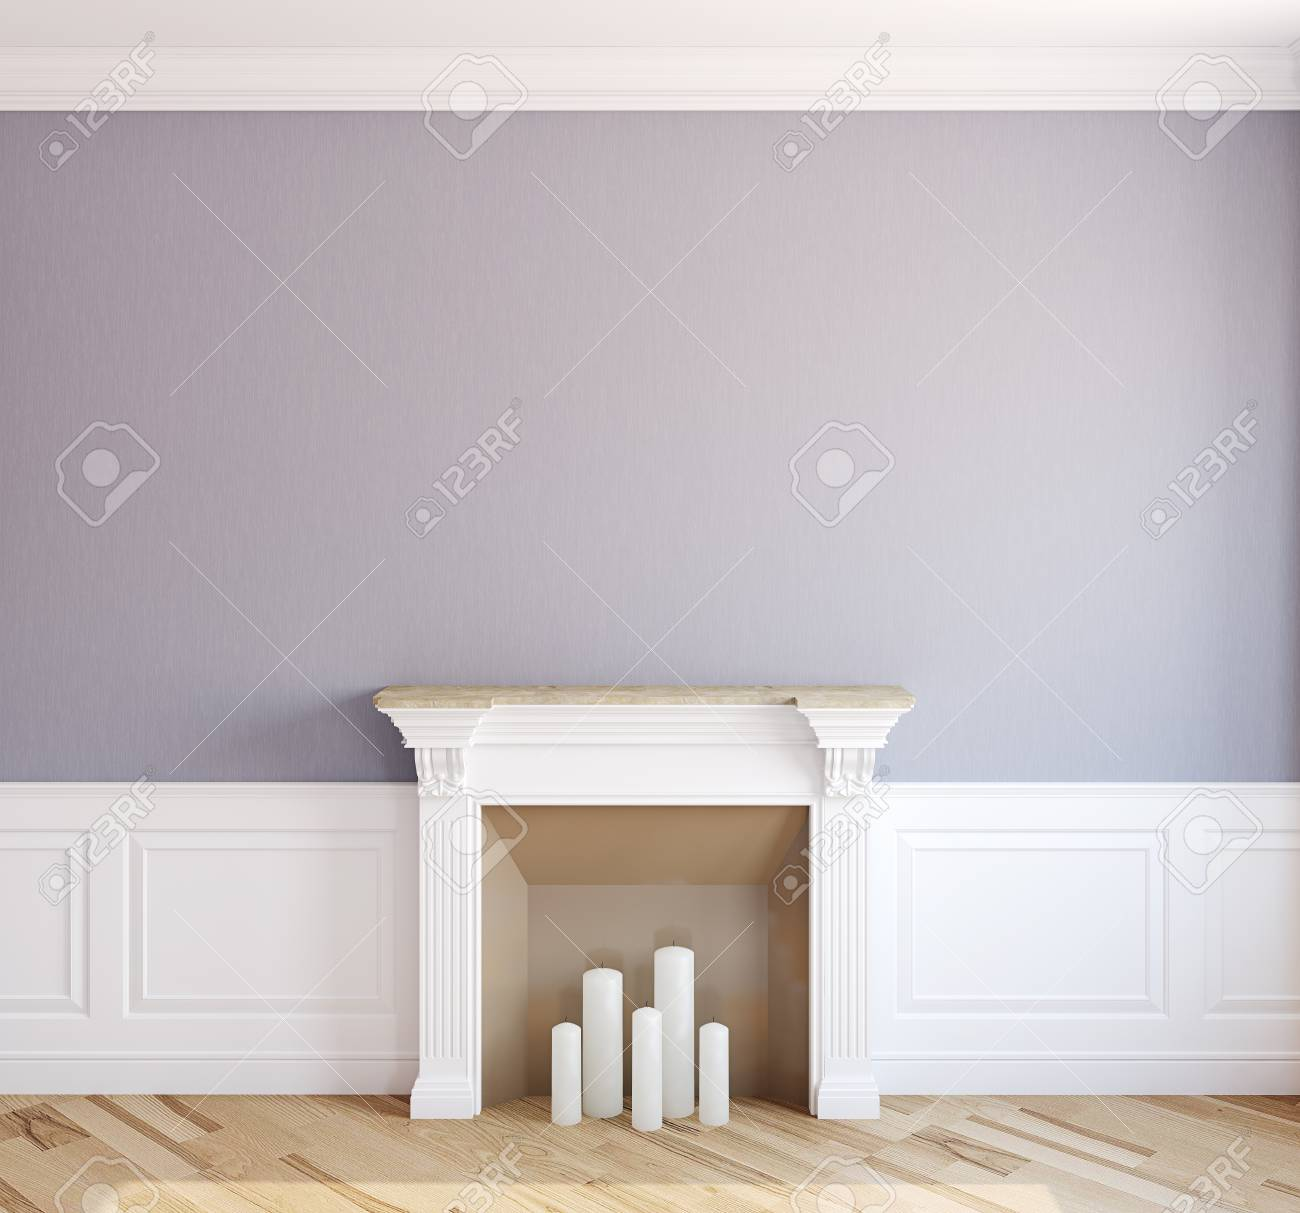 Interior with fireplace. 3d render. - 48268196